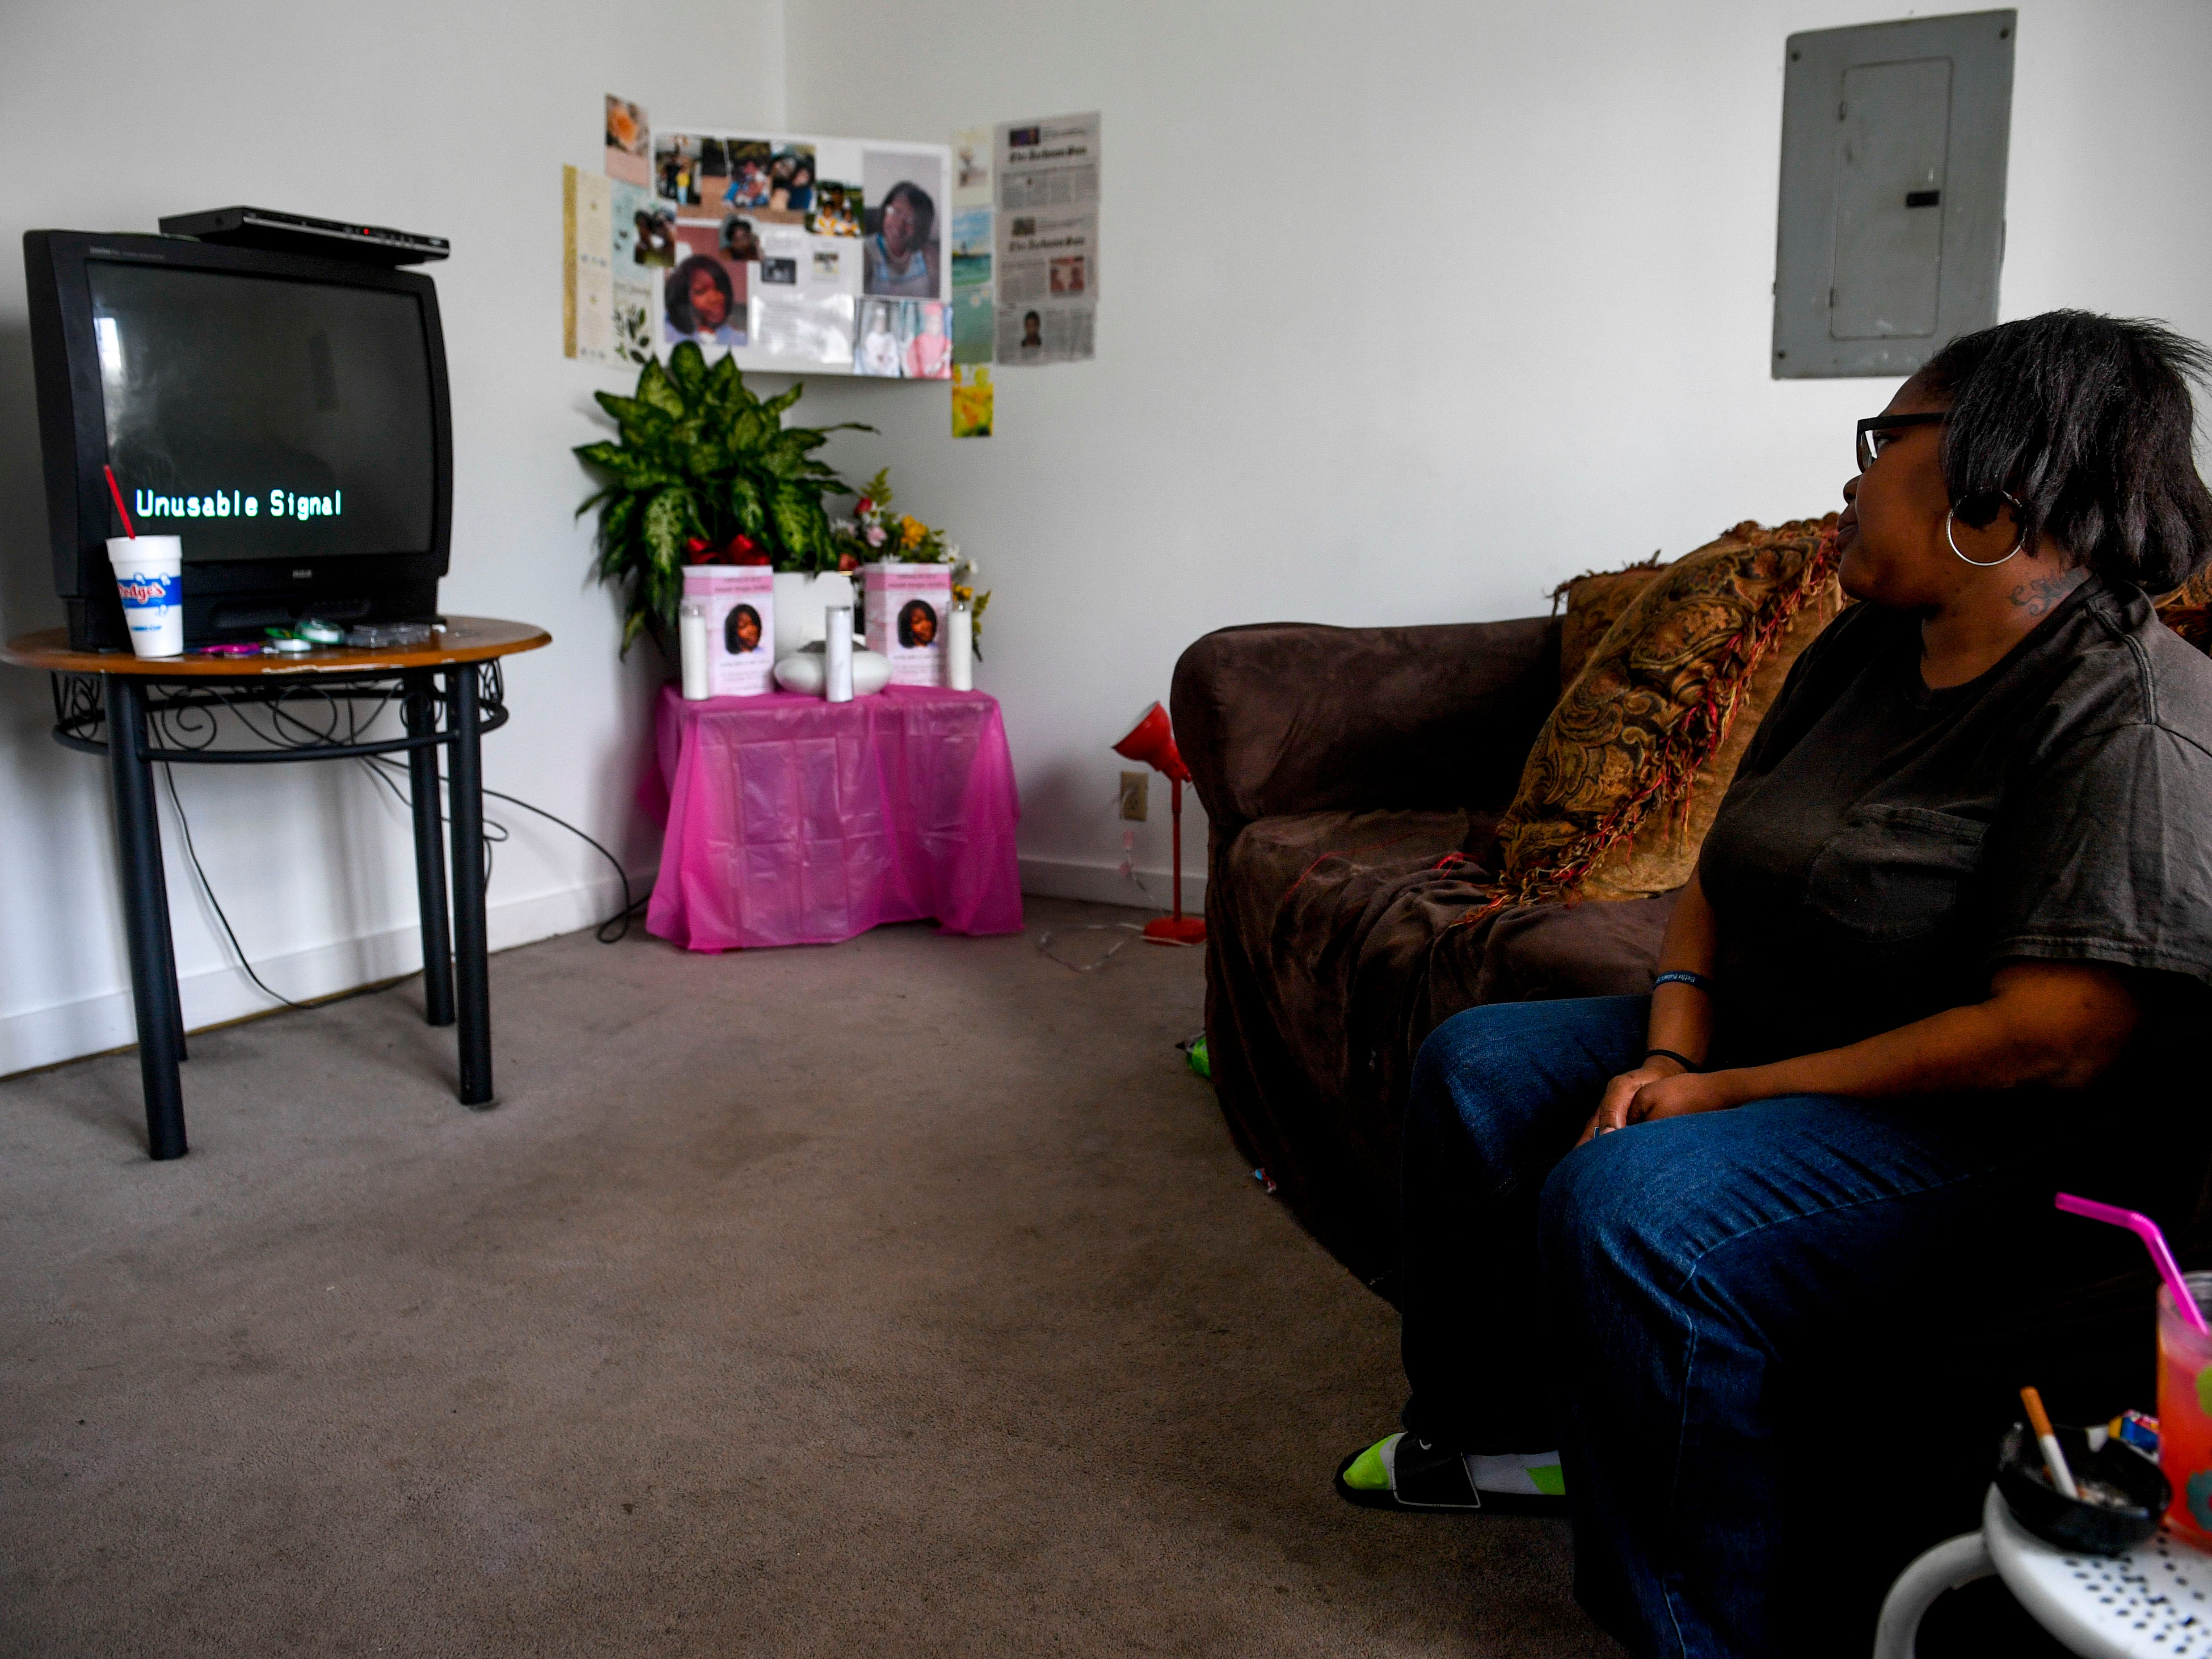 Alicia Hassell sits on the couch and gazes at the ashes of her daughter Amanda Northern, a victim of domestic violence, arranged as part of a memorial at Hassell's home in Jackson, Tenn., on Friday, Nov. 2, 2018.